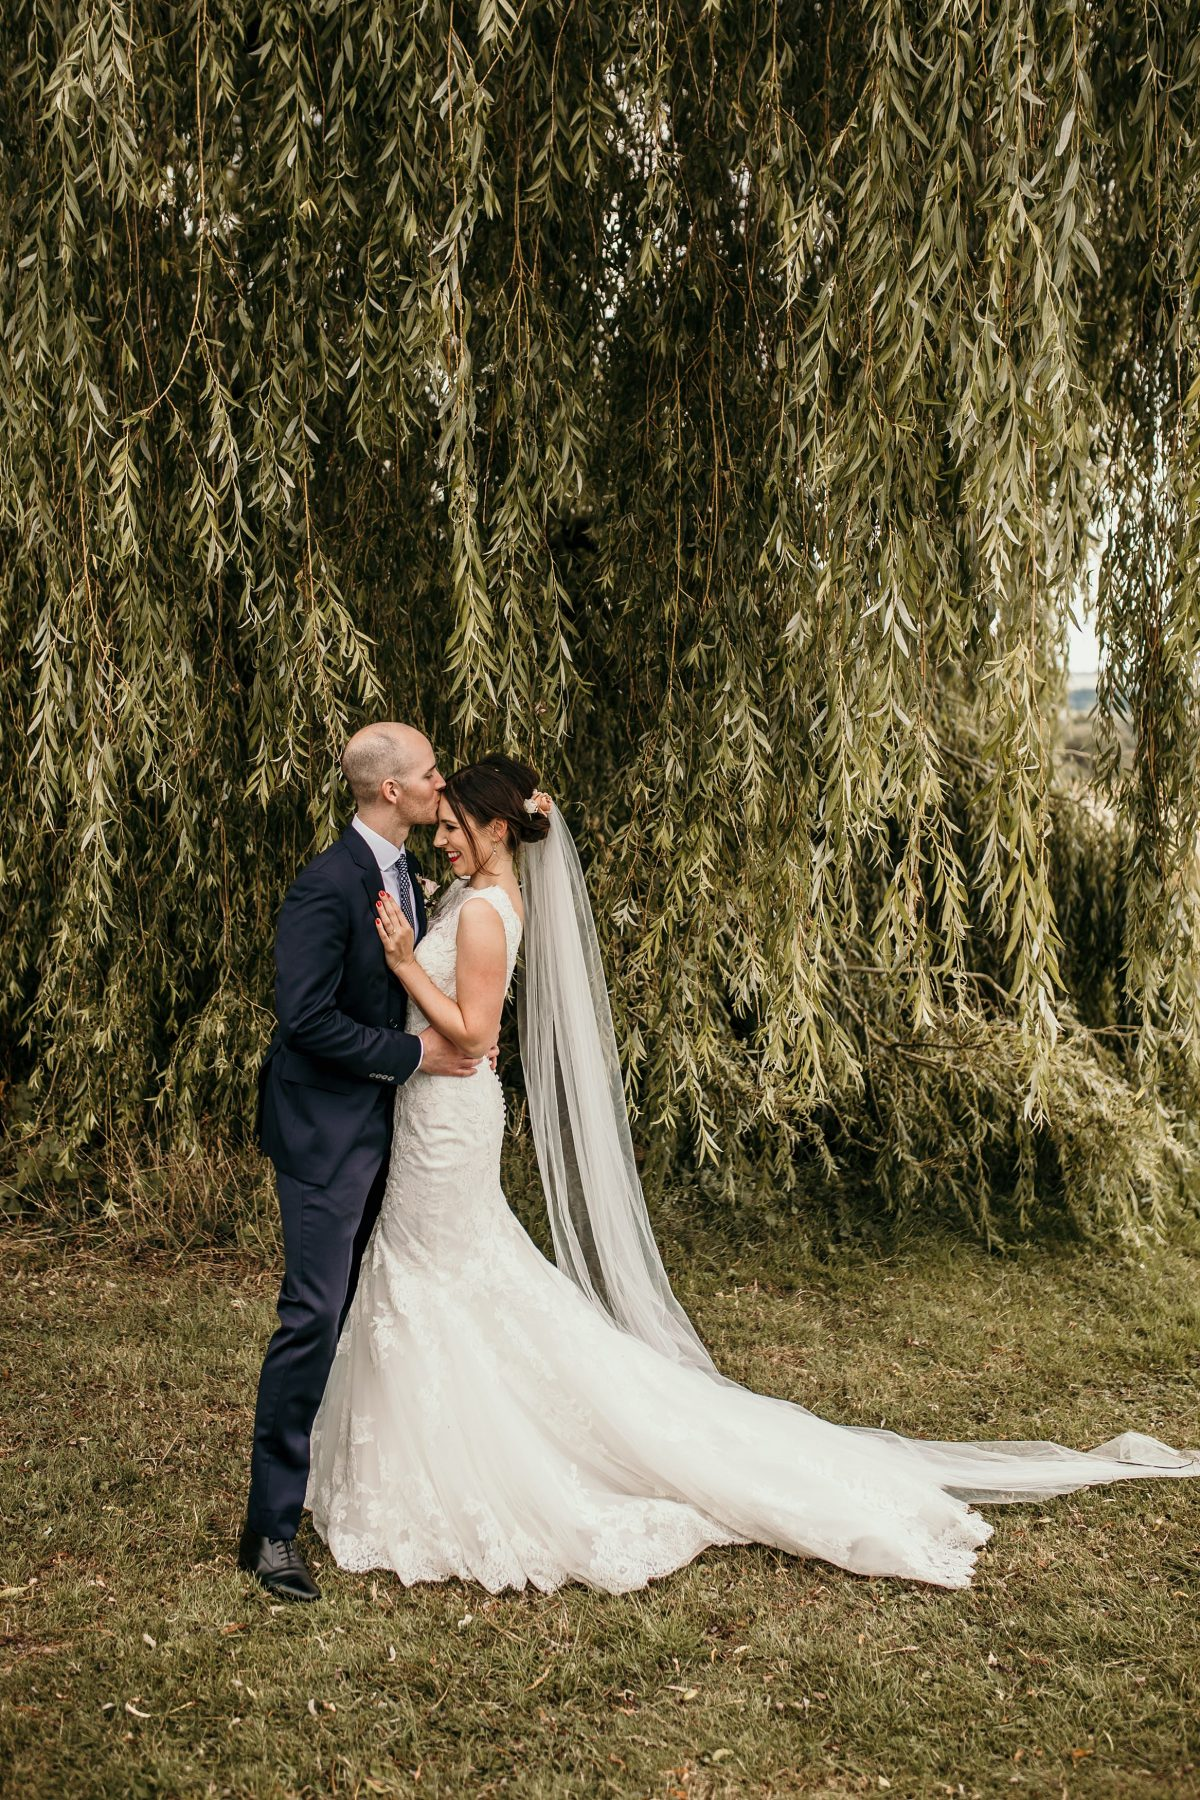 bride and groom wedding portraits at Merriscourt Barn Wedding venue by Cotswolds wedding photographer